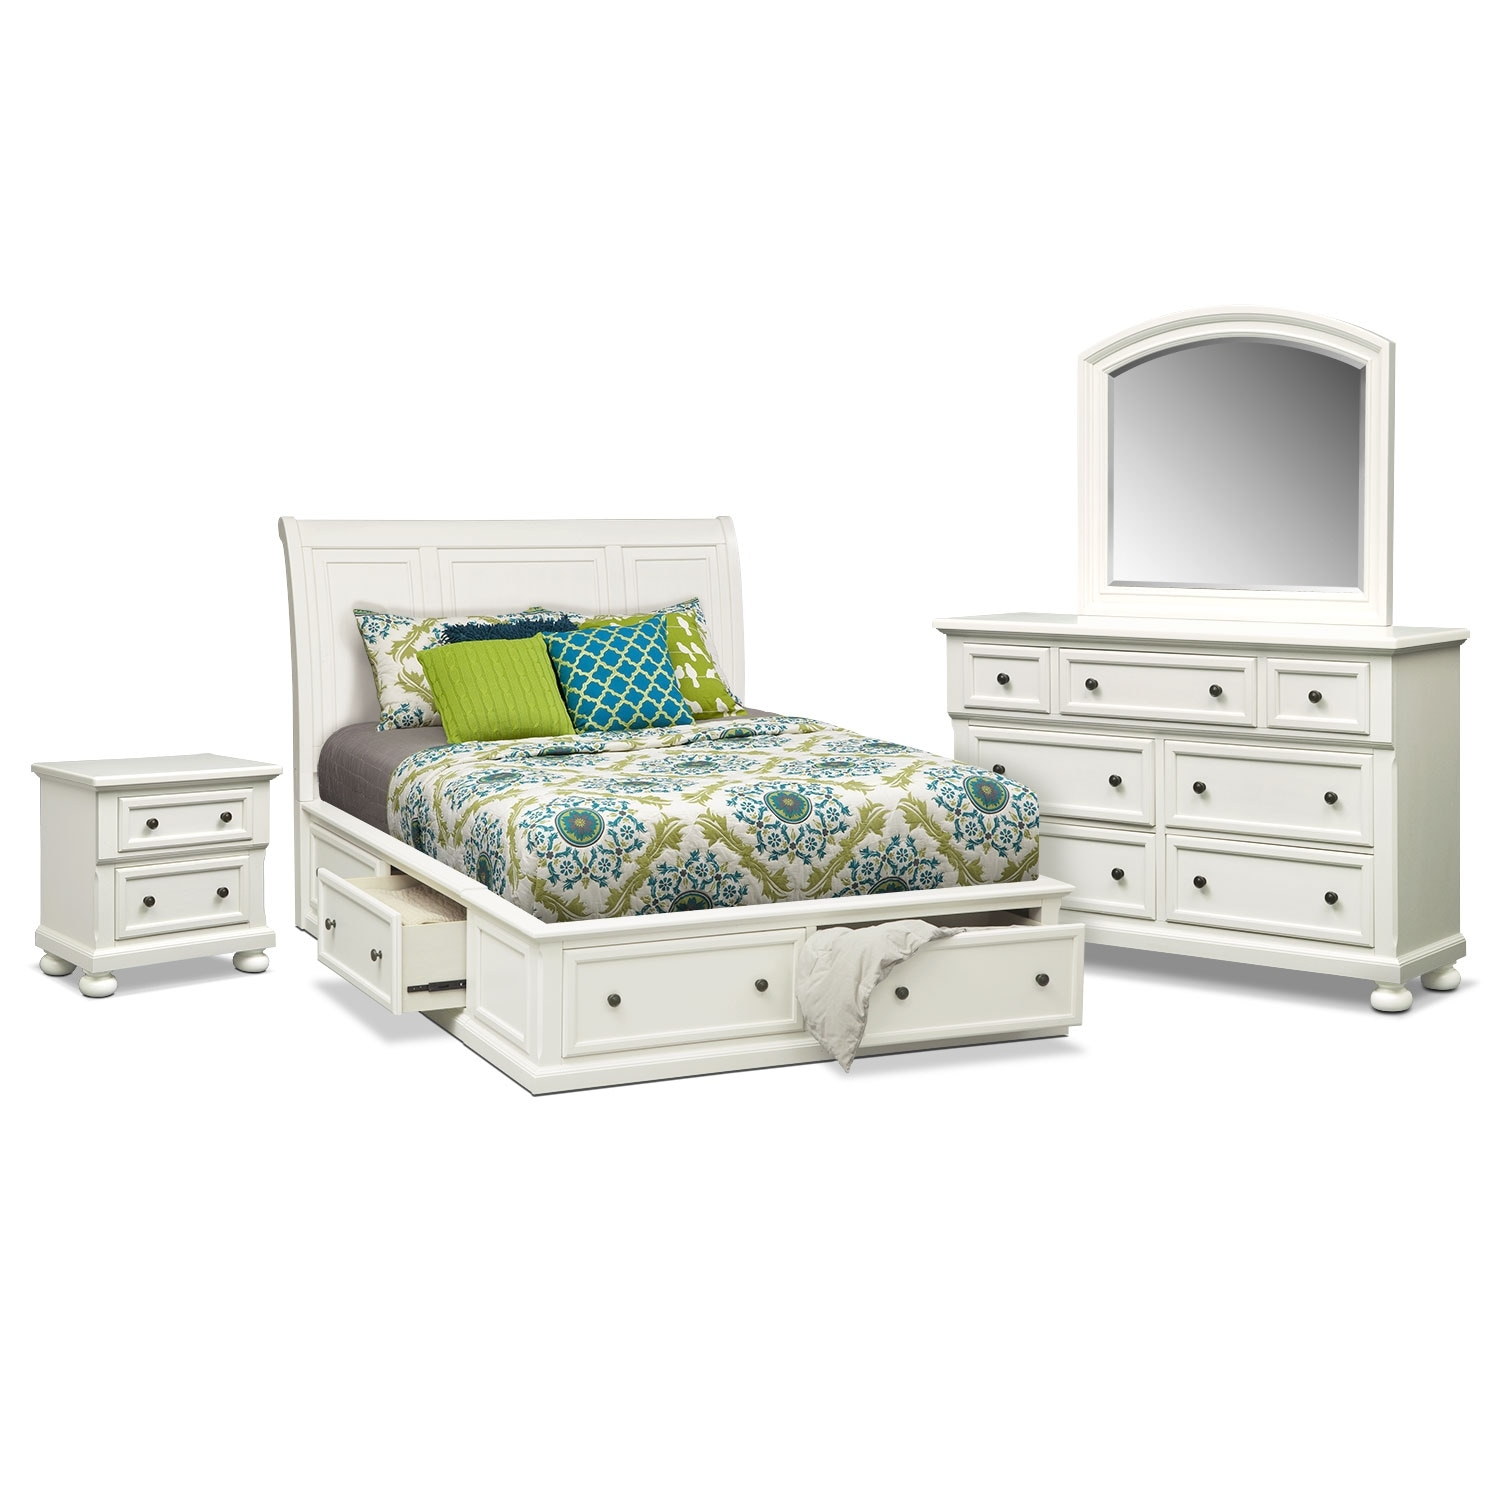 Hanover White 6 Pc. Queen Storage Bedroom Package